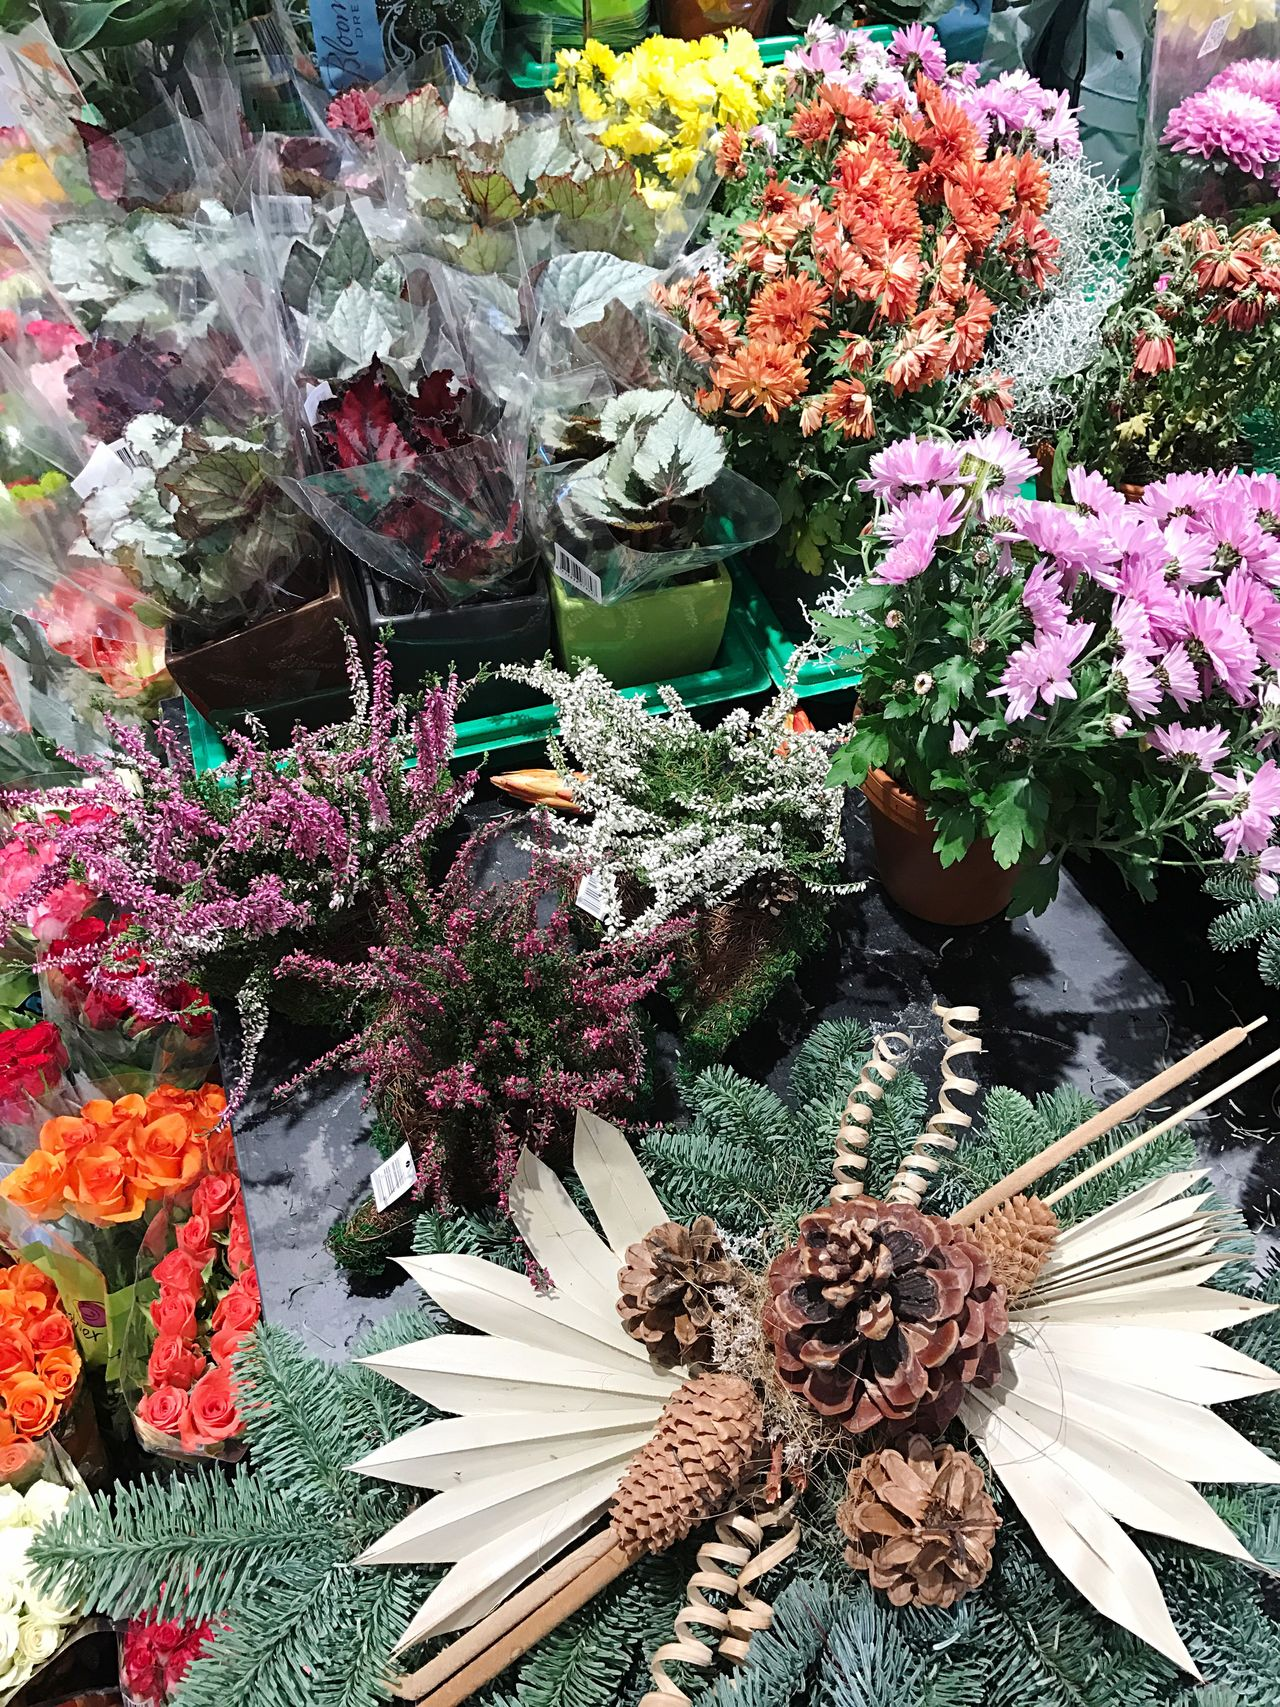 Flower Flowers Flower Collection Flower Shop Beauty In Nature Plant Nature Growth Multi Colored Flower Head For Sale No People Bouquet Day Variation Flower Market Close-up Blossom Freshness